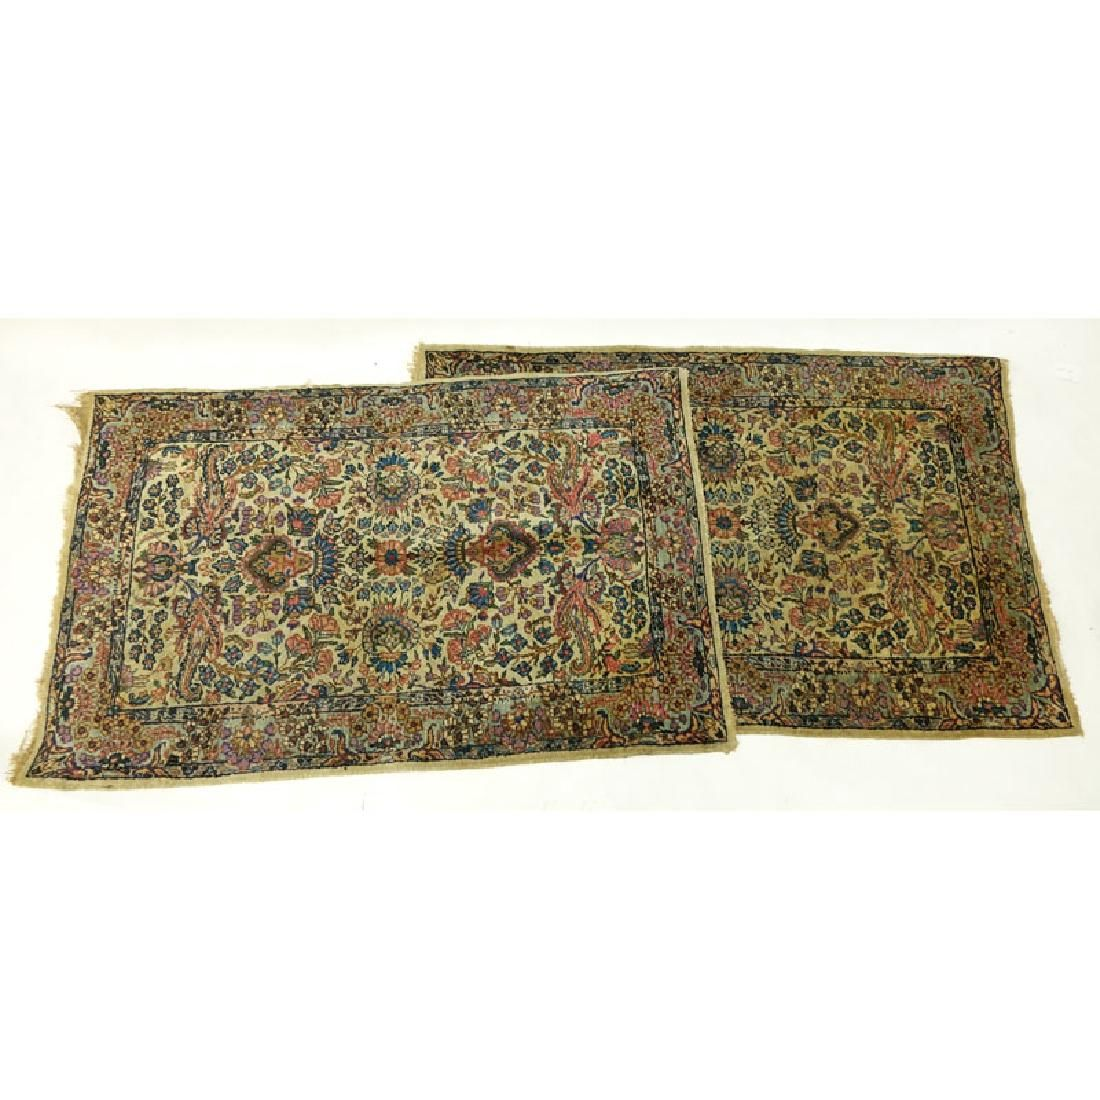 Pair of Semi Antique Kerman Rugs. Mainly tan with multi